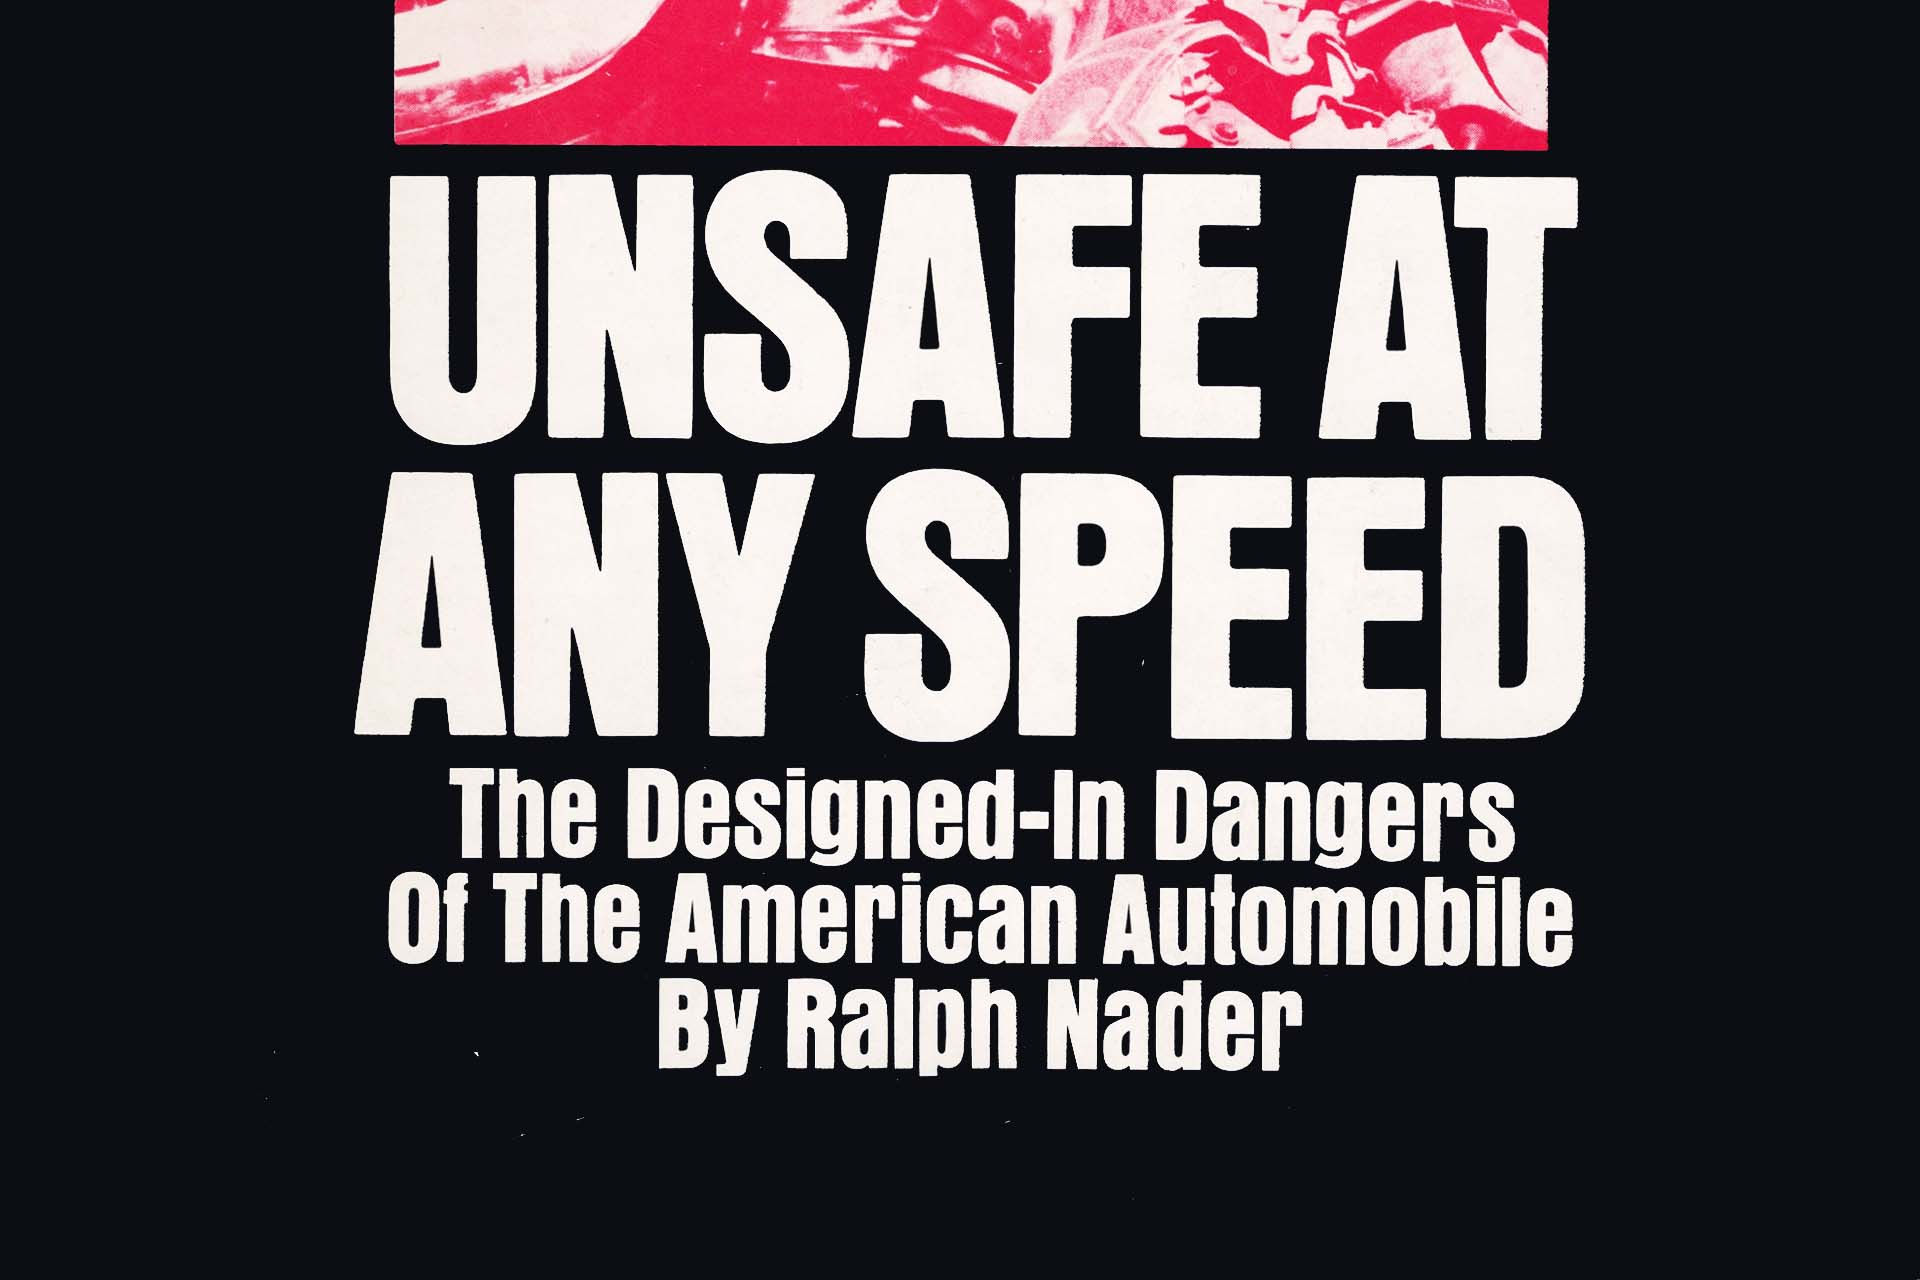 Kia First Time Buyer >> Feature: Unsafe at Any Speed, 50 Years Later - Page 2 of 4 ...